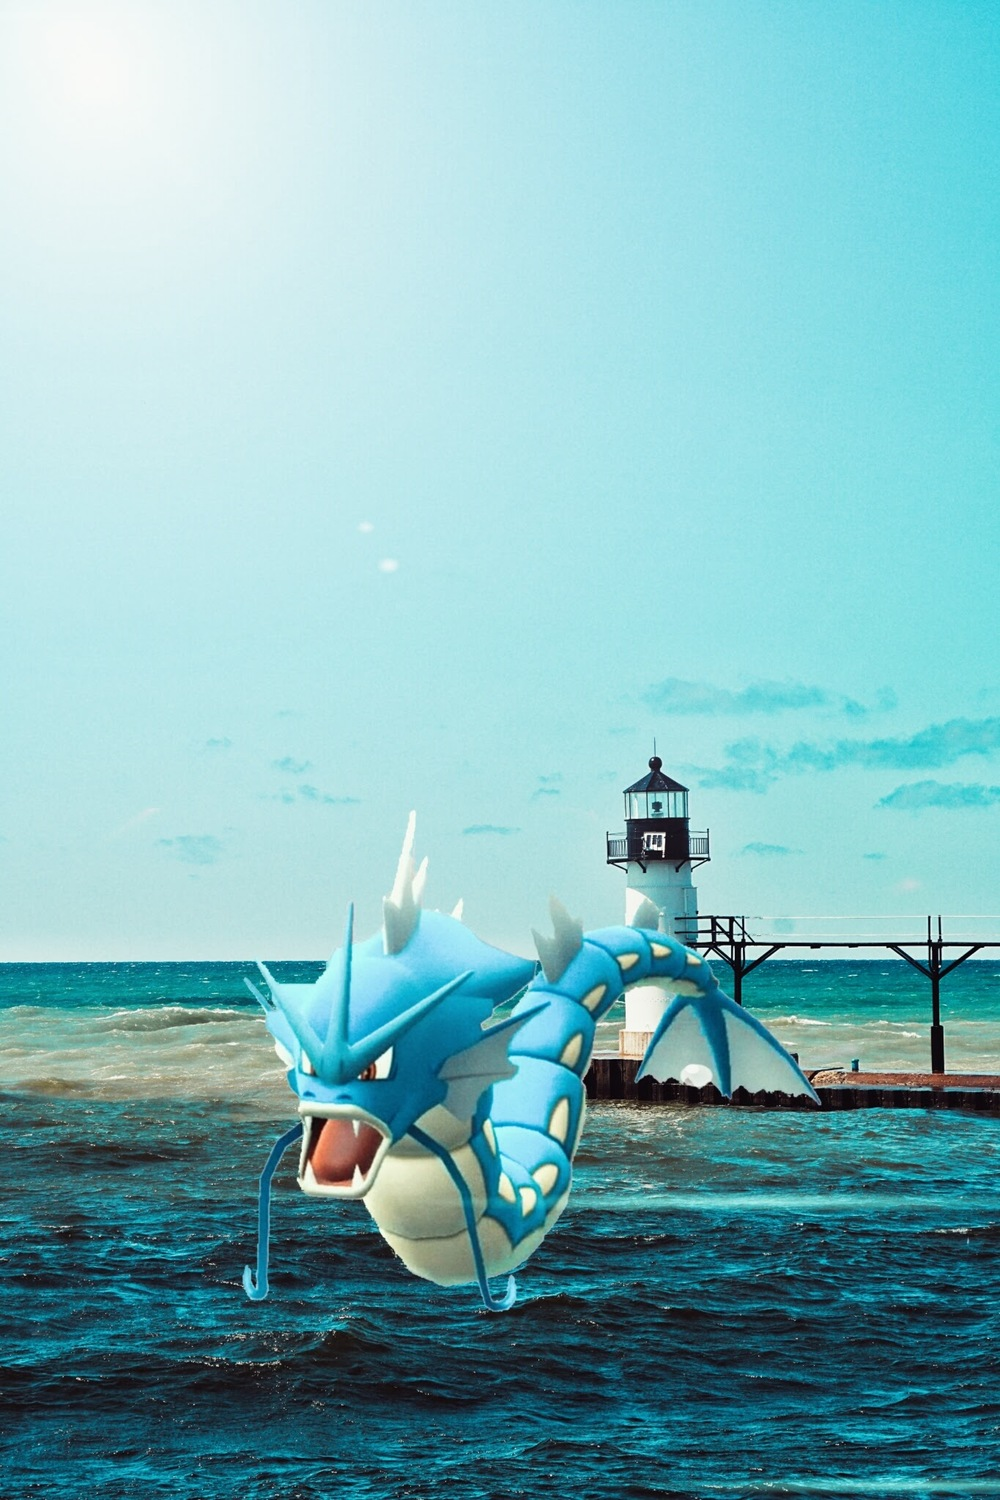 Gyarados in Lake Michigan